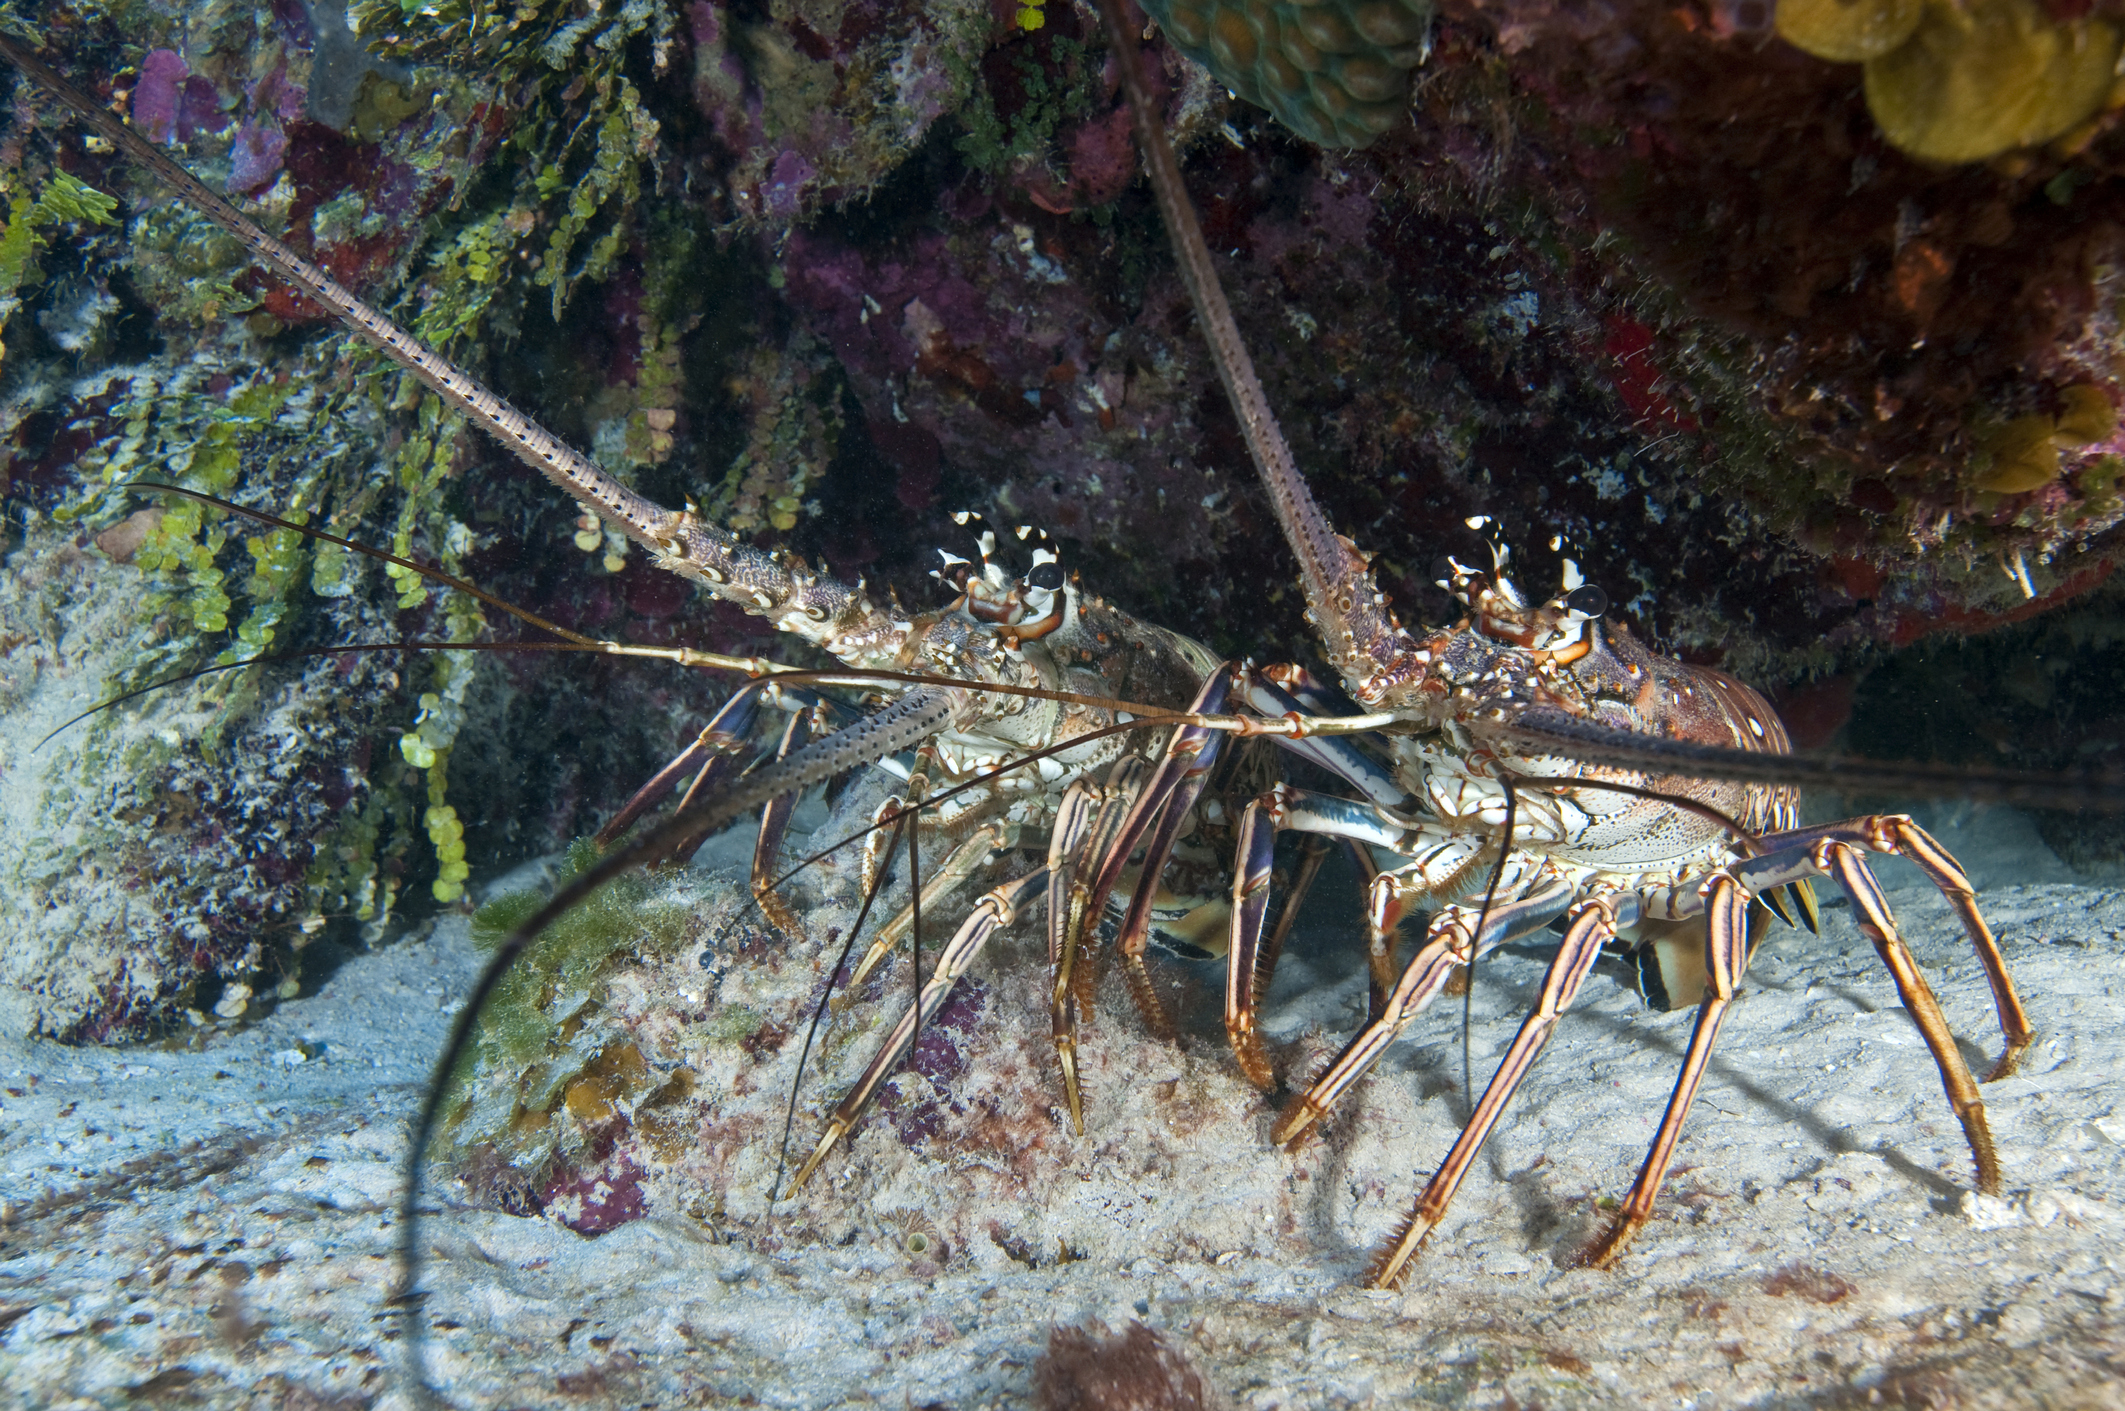 Caribbean spiny lobsters (Panulirus argus) are one of several commercially important species for the people of Andros Island. Catch limits and the protection of nursery habitats are key to ensuring the viability of this valuable fishery. Photograph by Karen Doody/Stocktrek Images/Getty